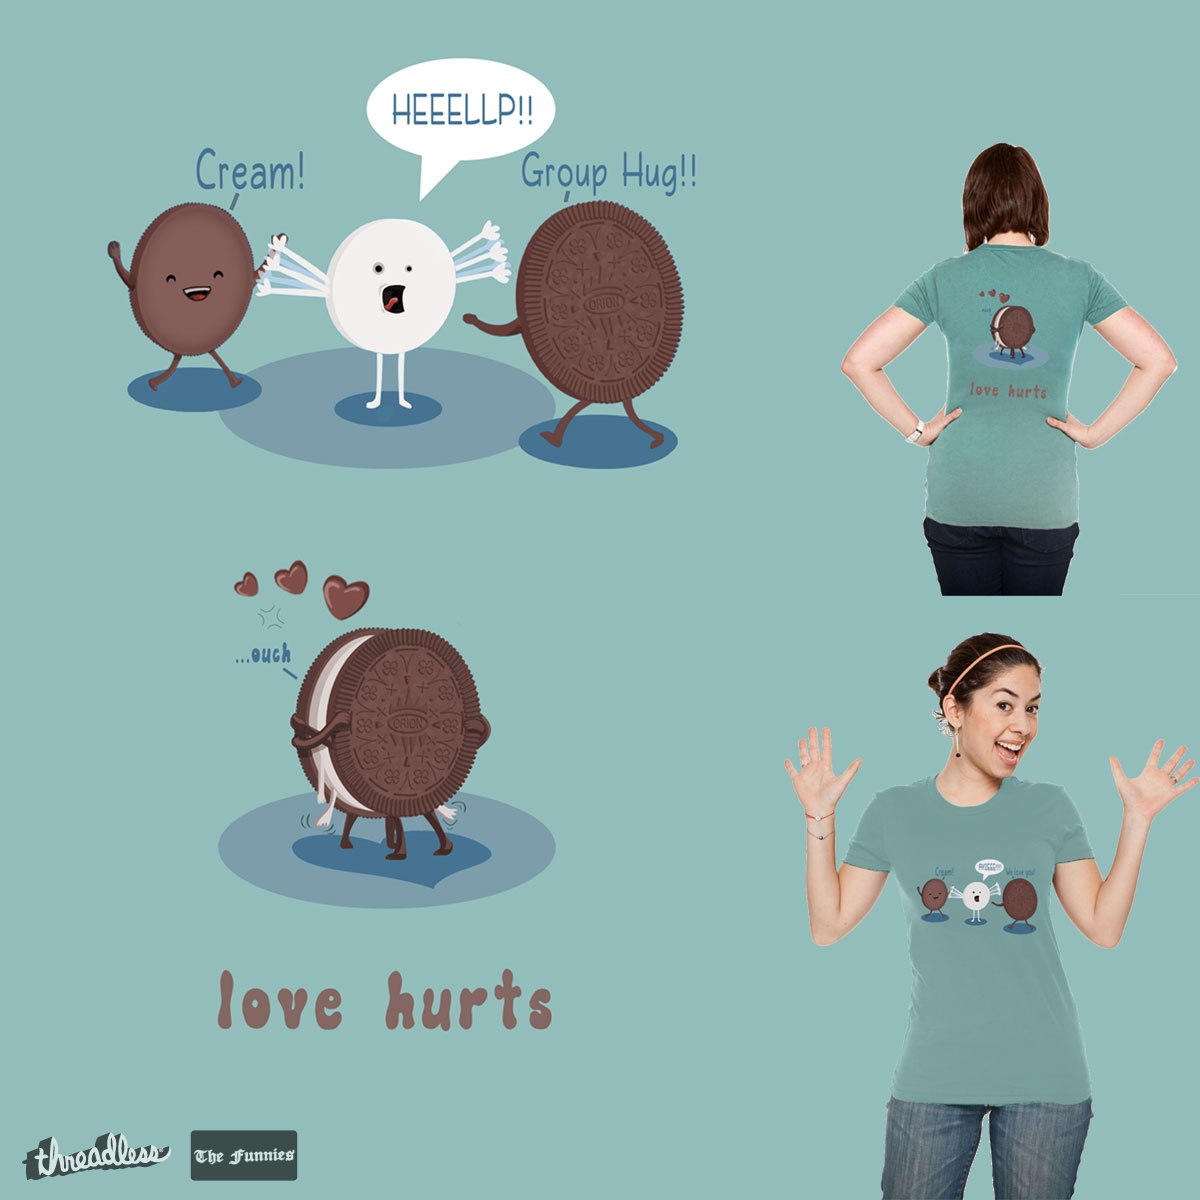 Love Hurts, a cool t-shirt design